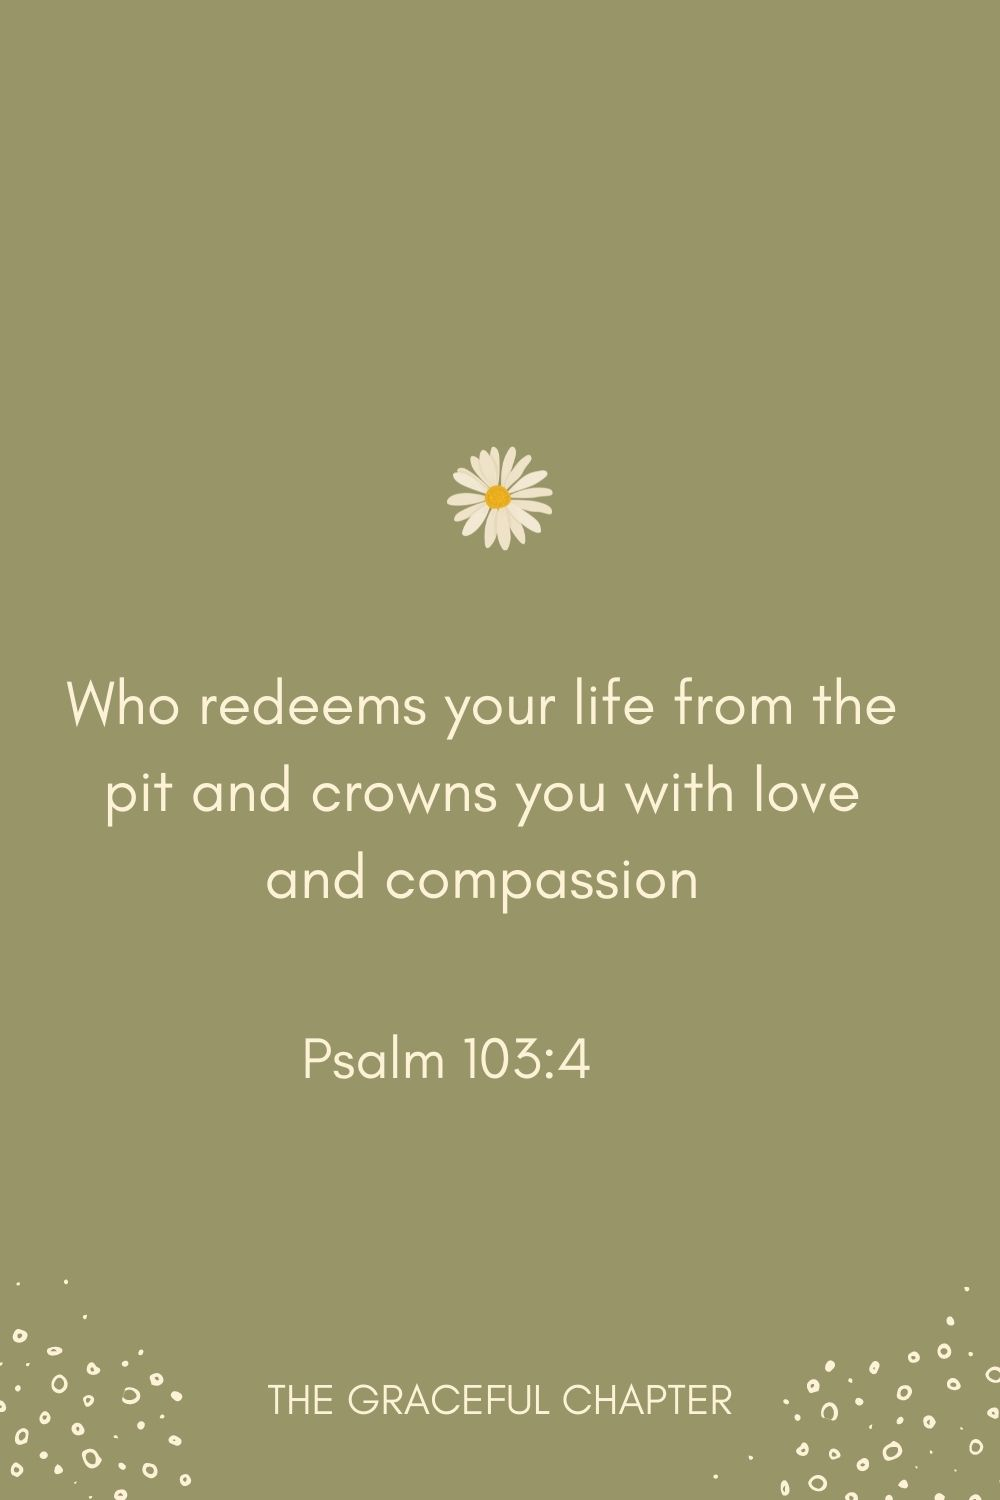 Who redeems your life from the pit and crowns you with love and compassion Psalm 103:4